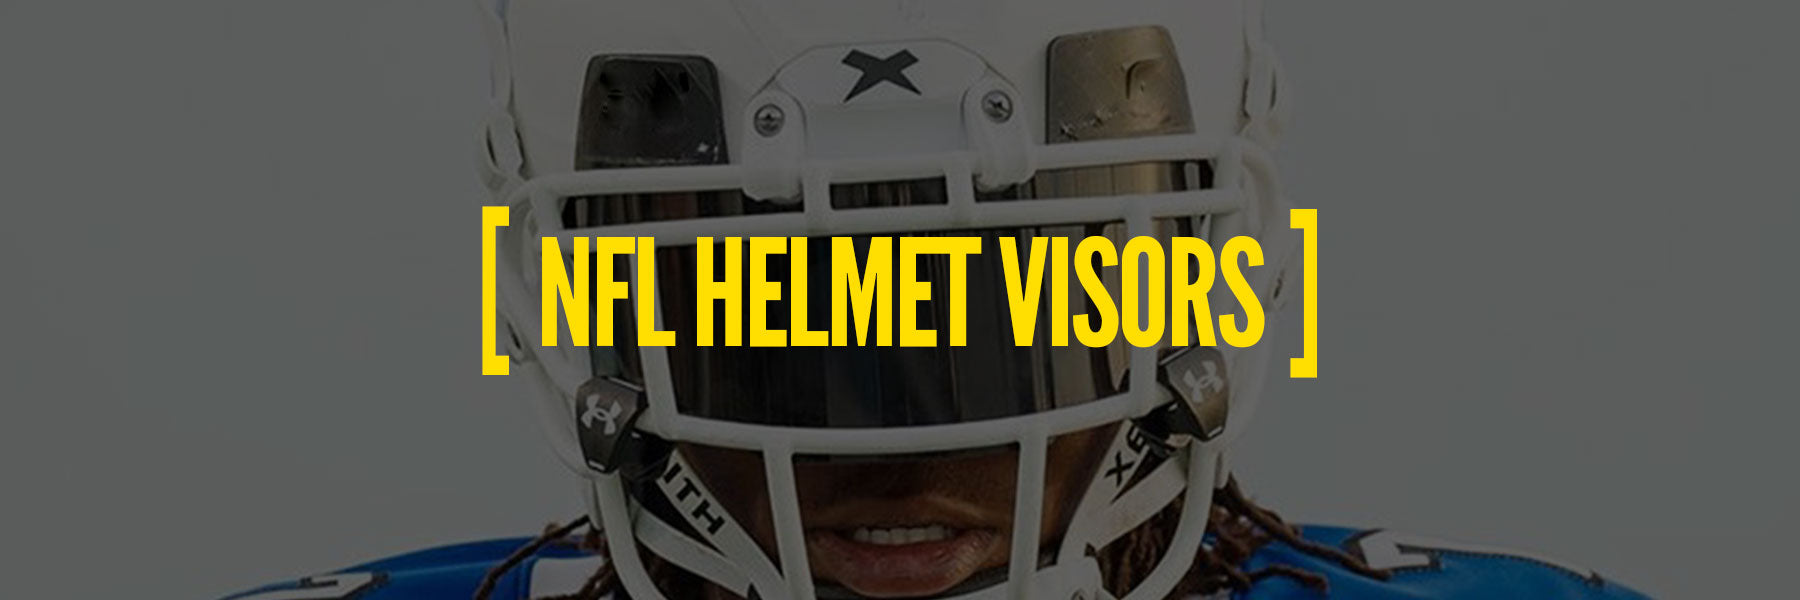 What Visor do NFL players use?